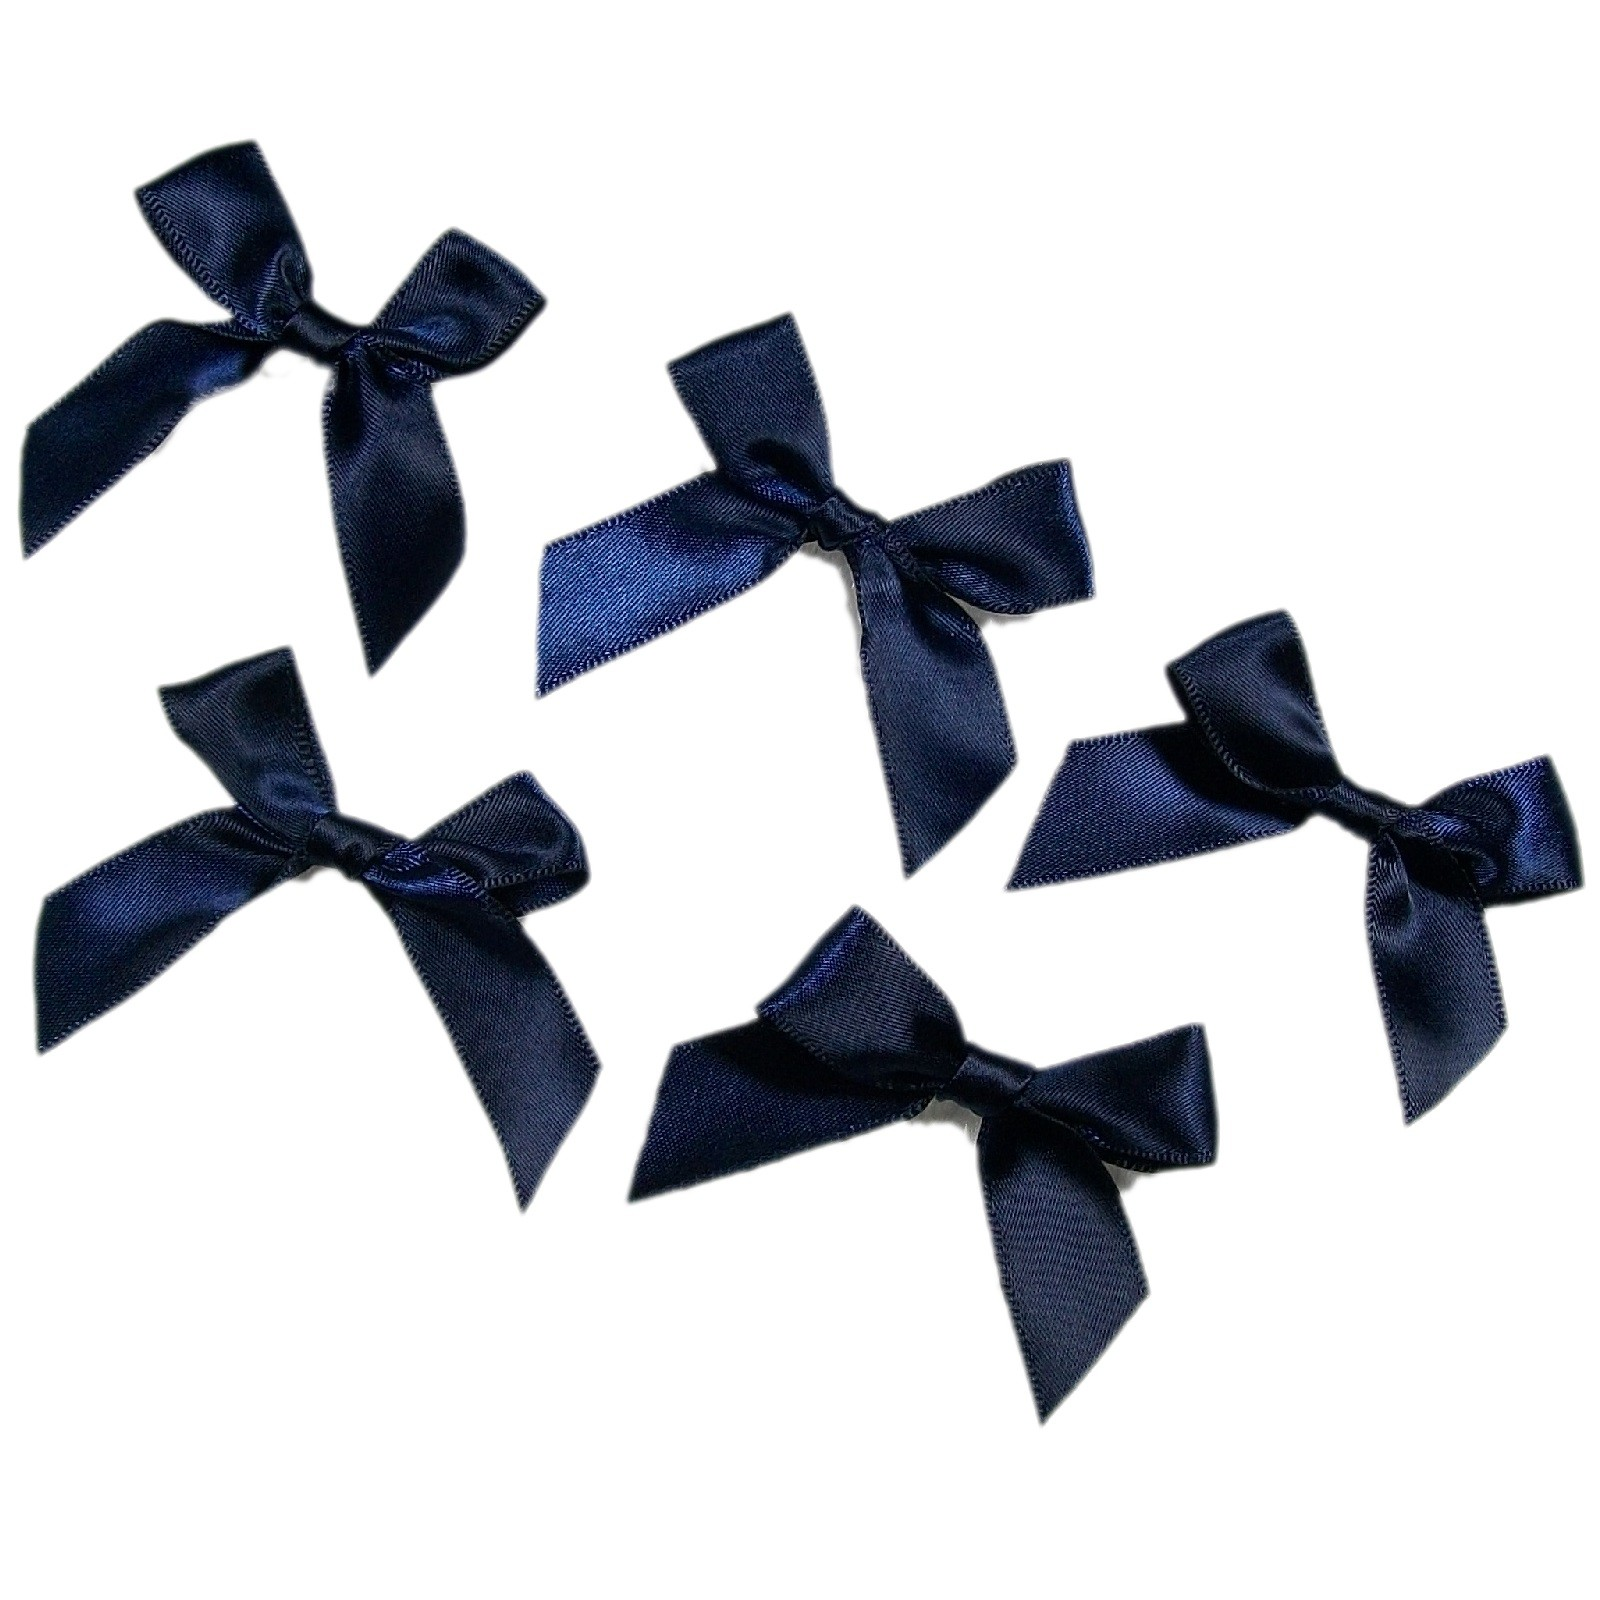 Satin Ribbon Bows approx 5.5cm wide Dark Blue Pack of 5